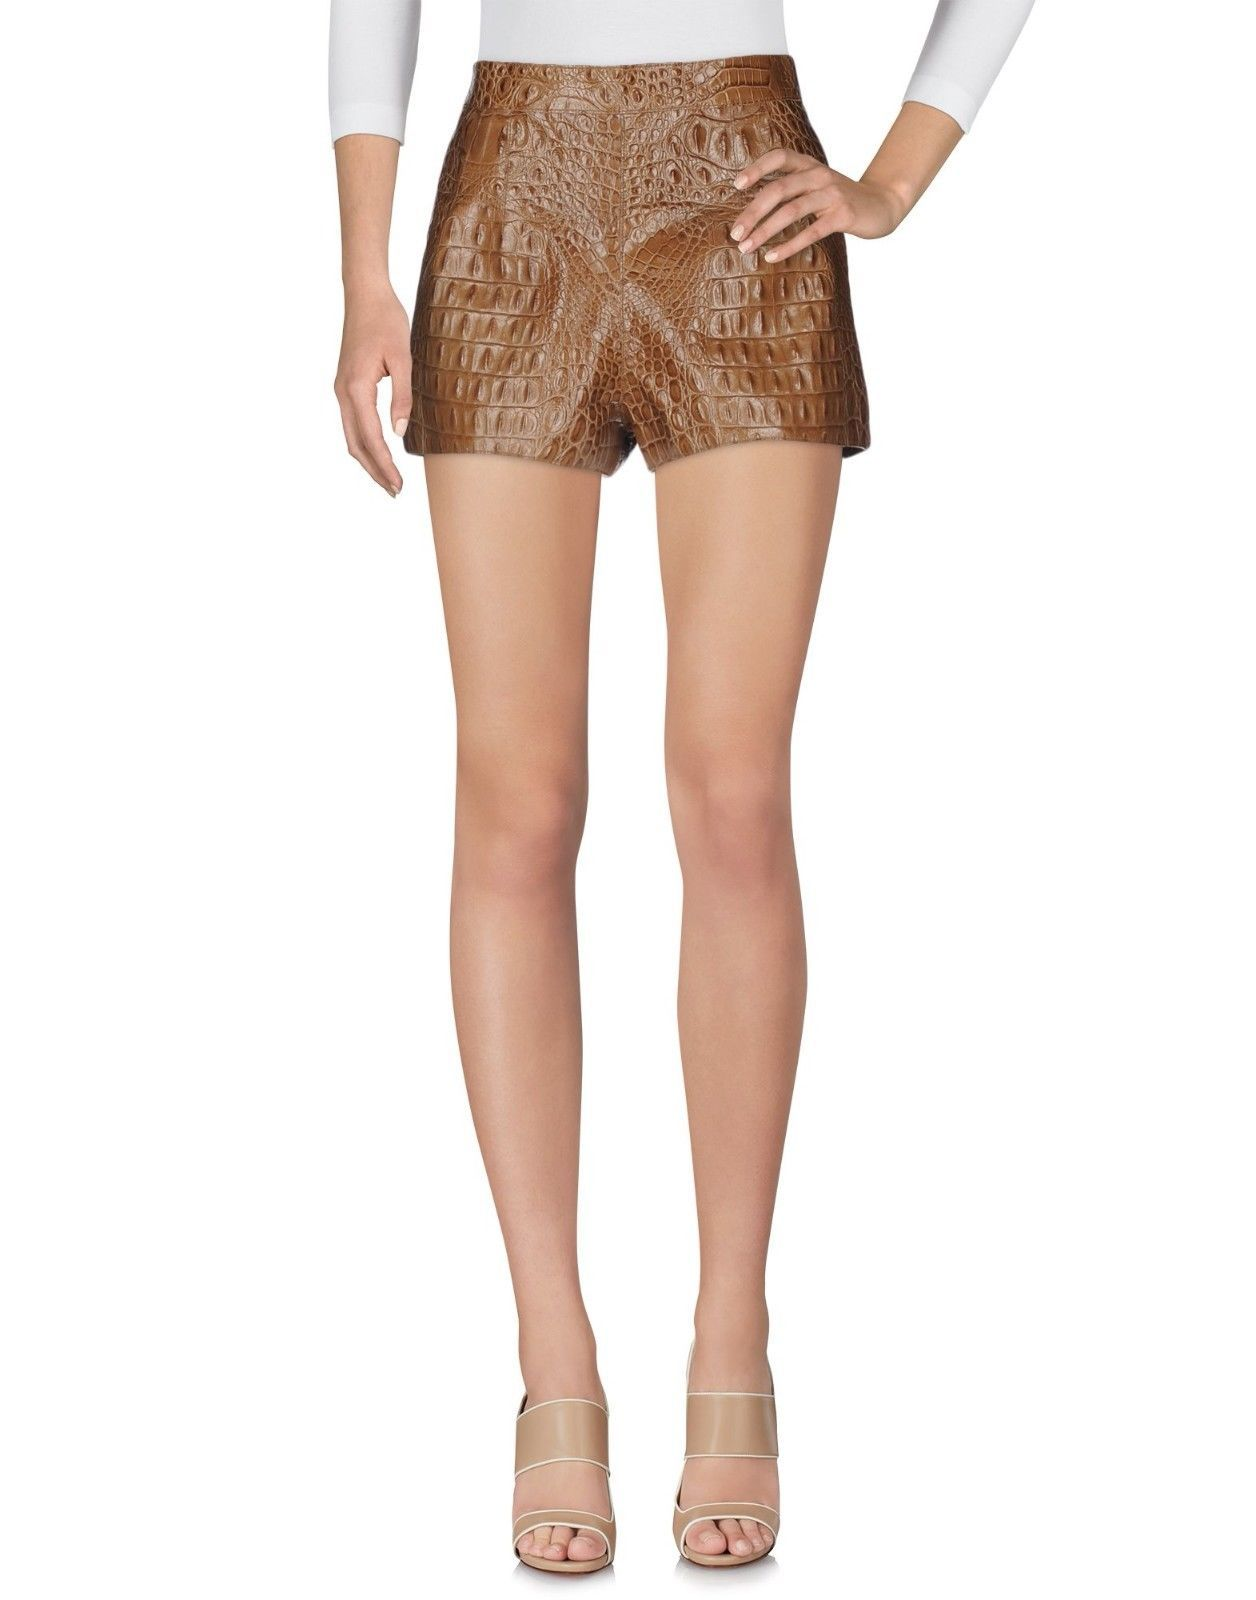 Crocodile Print Pant Hot & Sexy Style Women's Genuine Soft Leather Short Pants